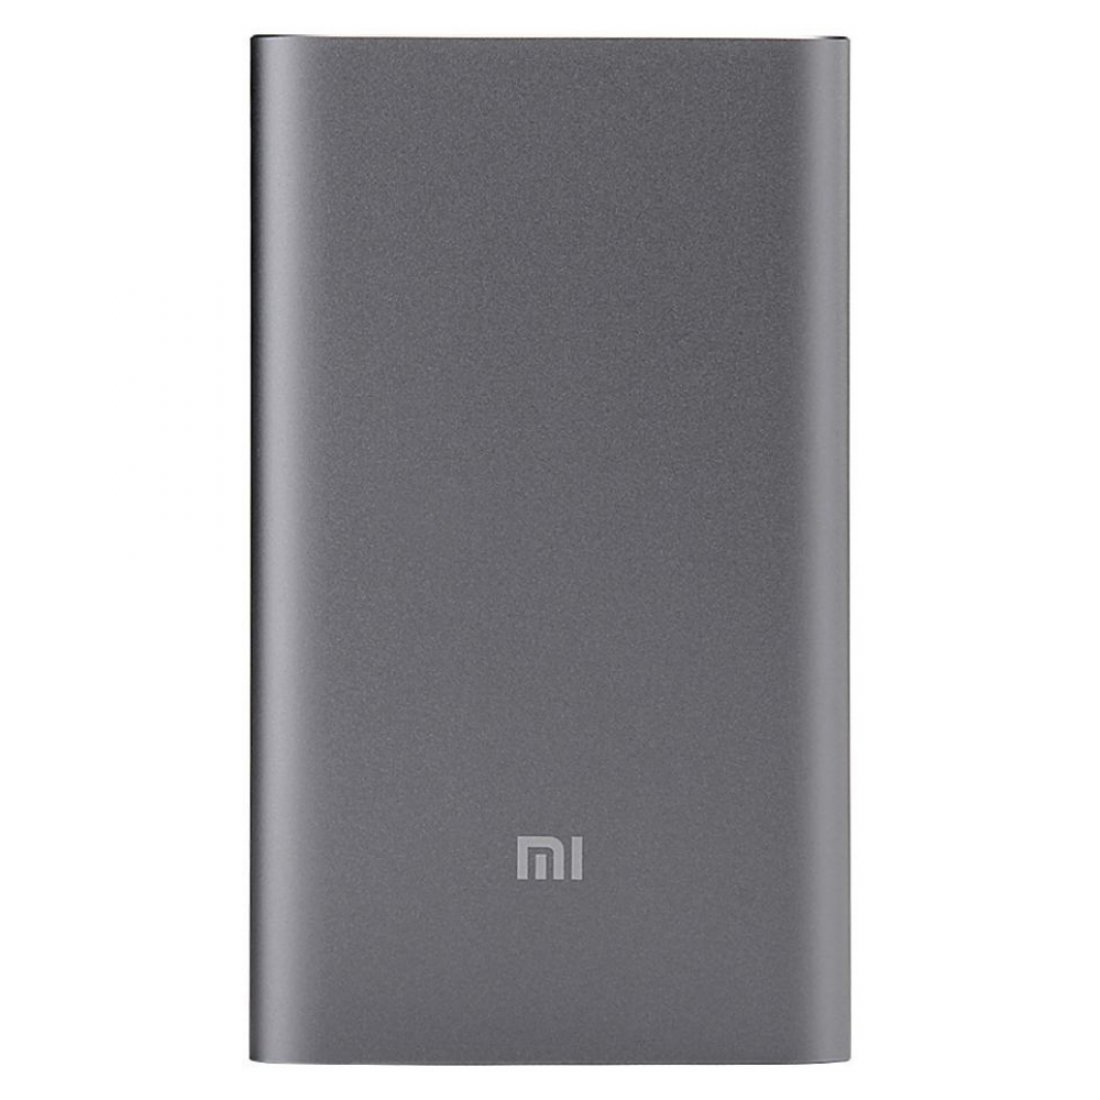 Купить Xiaomi Mi Power Bank 2 10000 mAh в Бишкеке